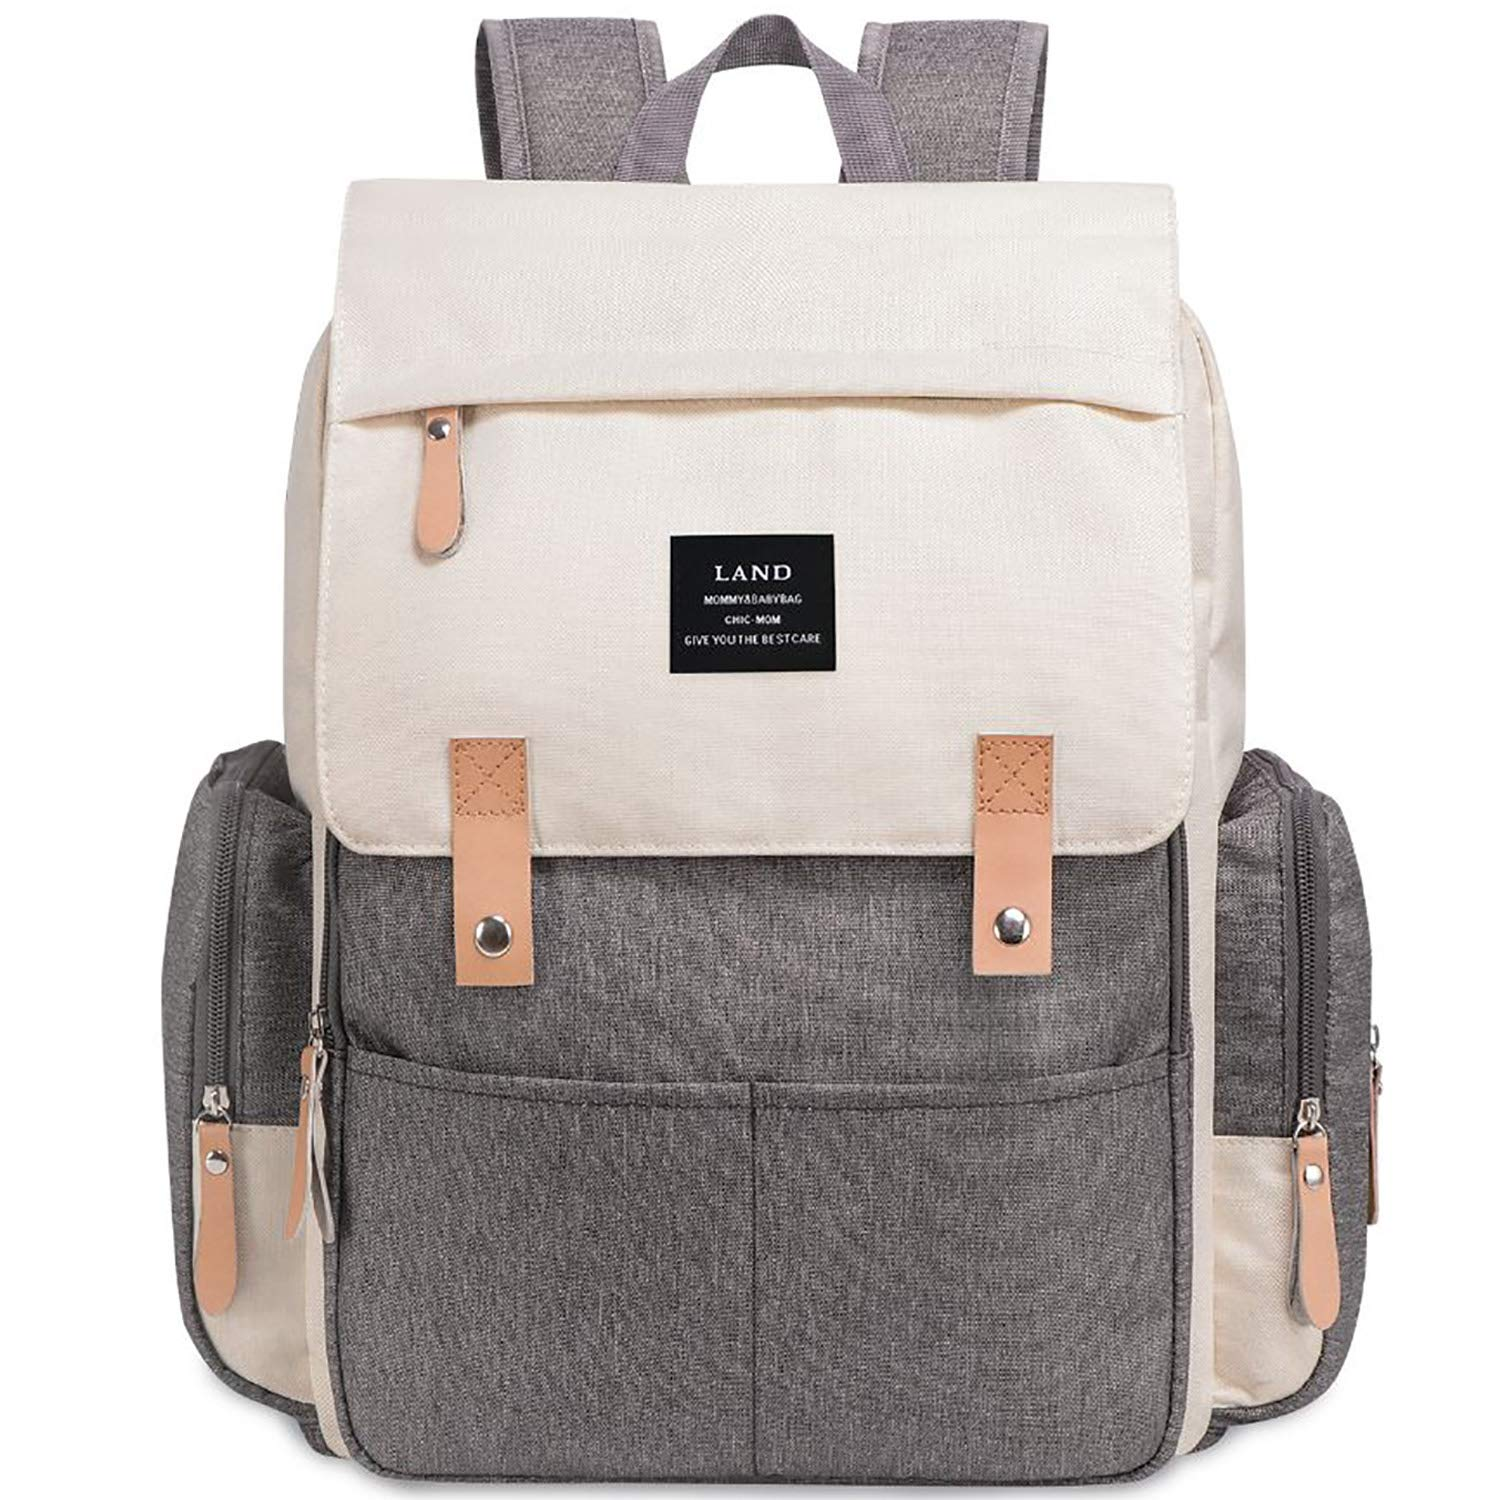 Amazon.com : Land Backpack Diaper Bag for Mom/Dad, Baby